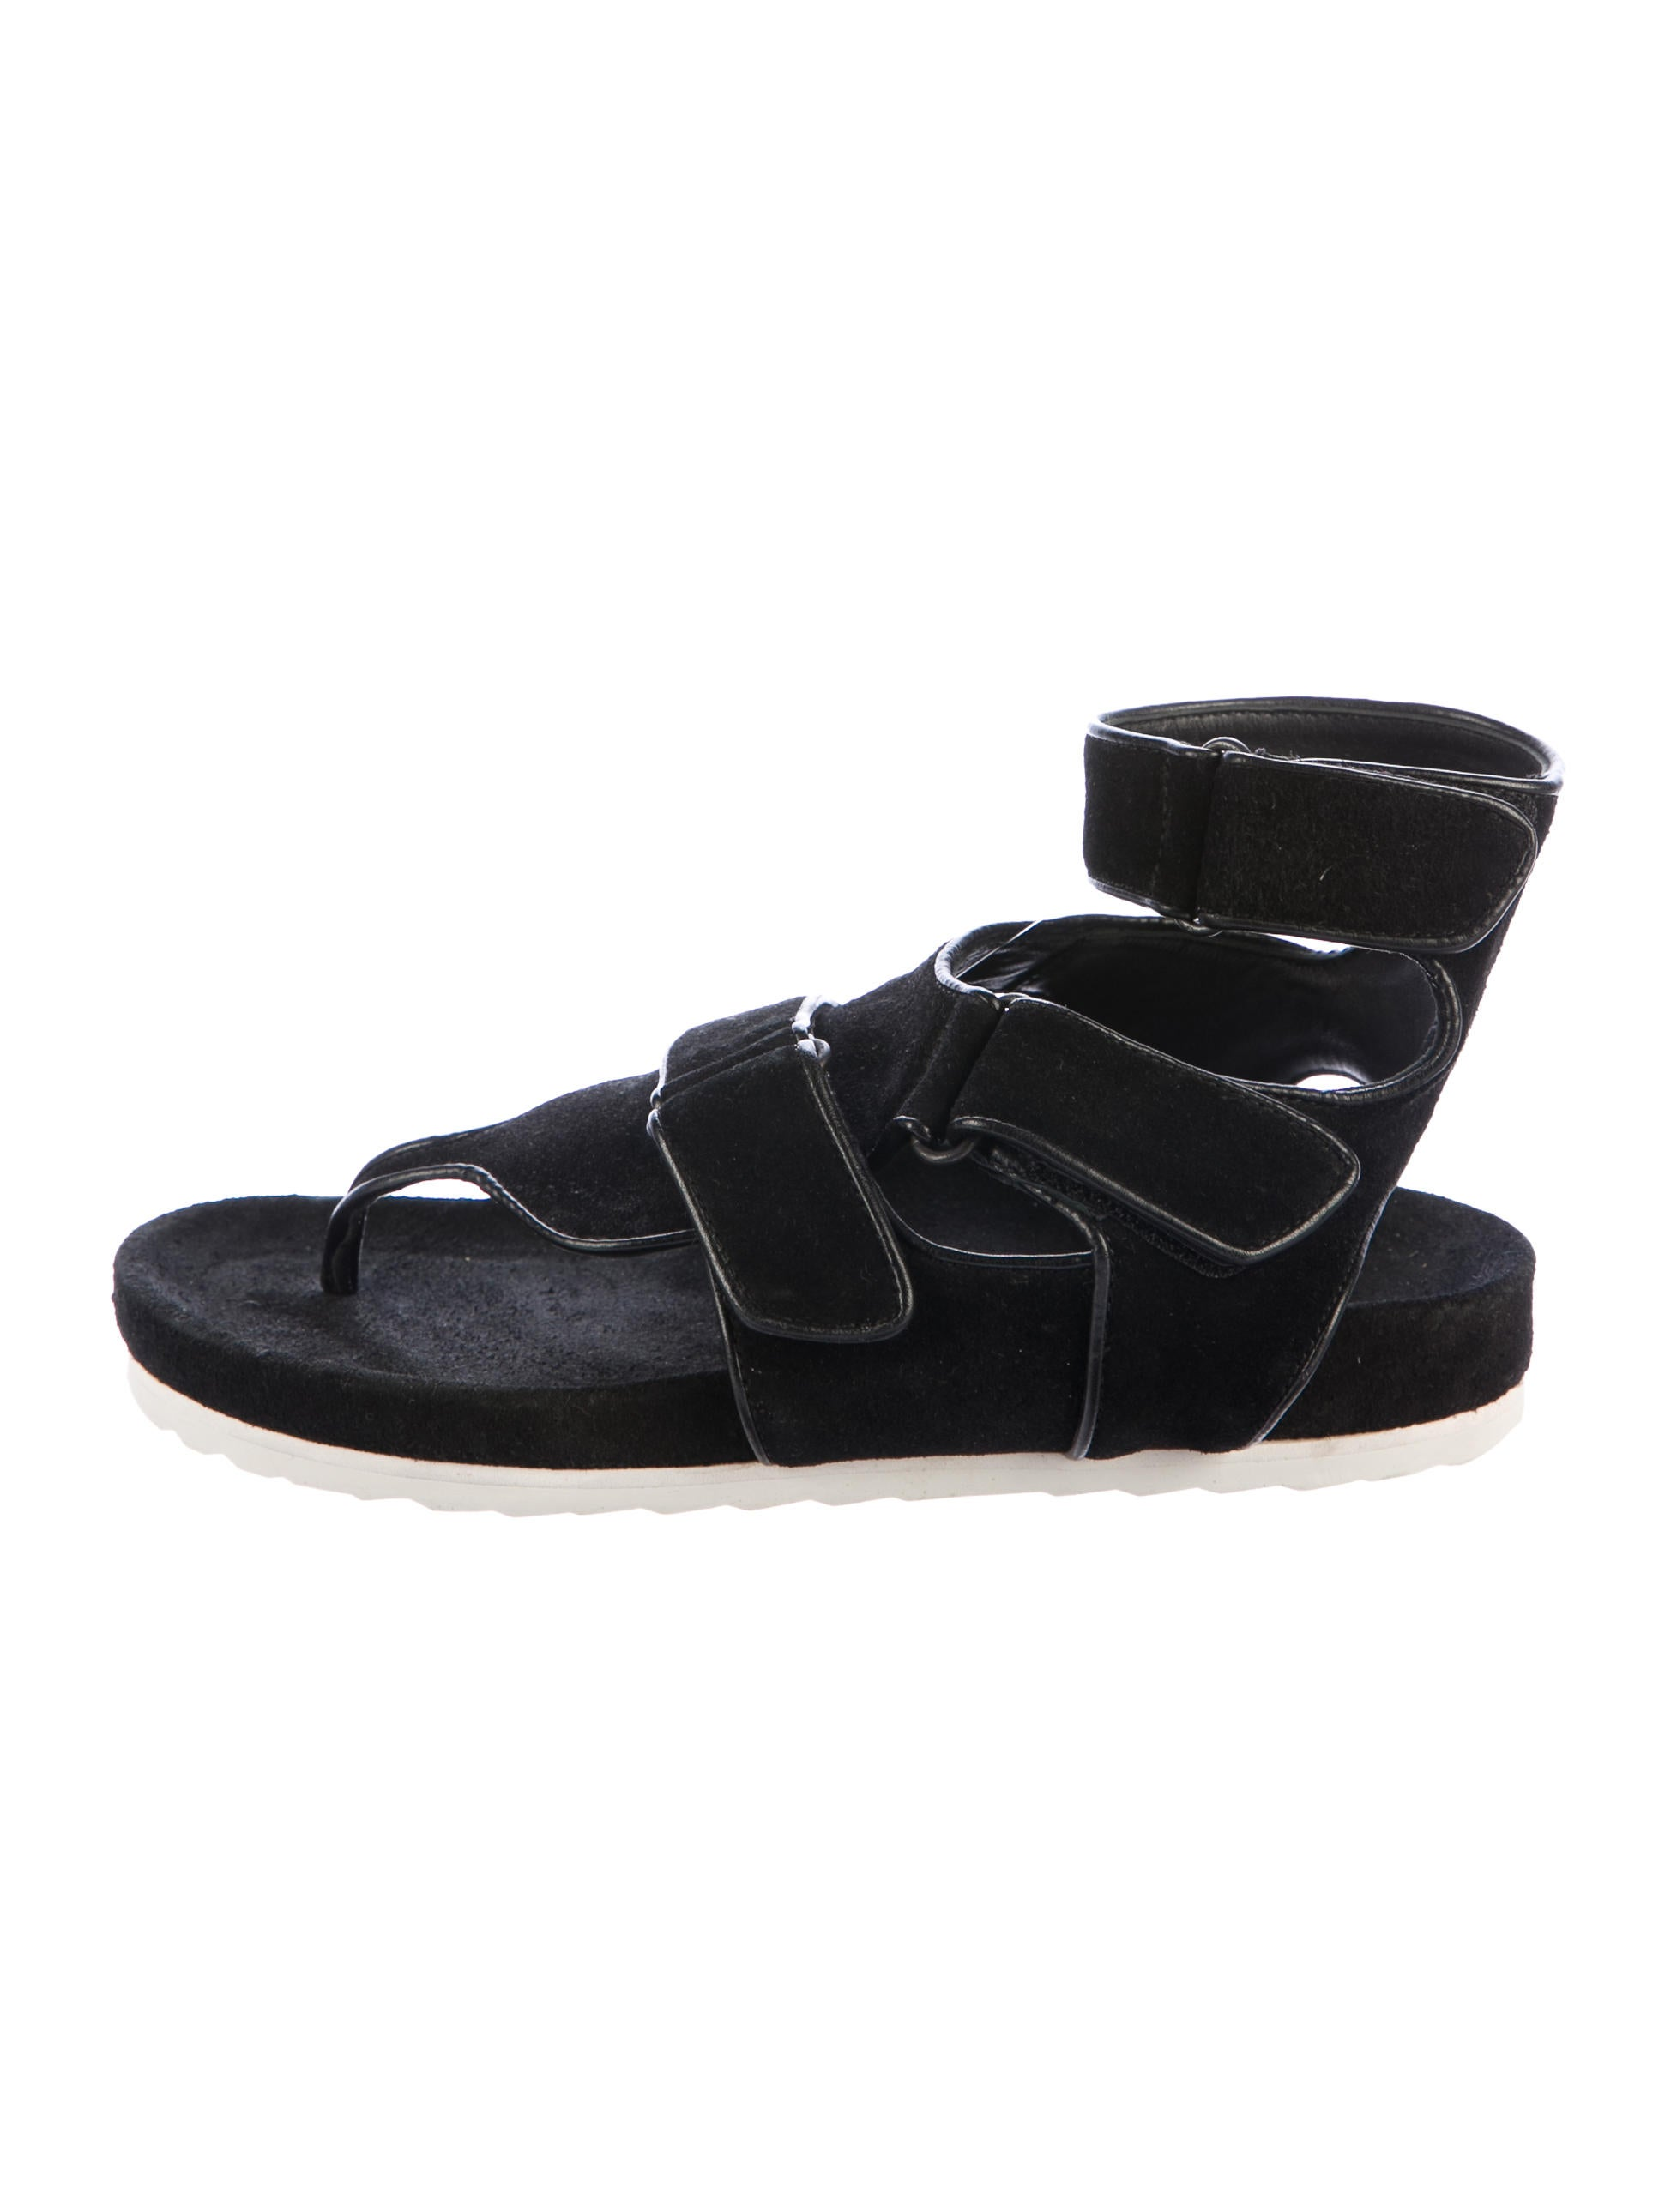 Pierre Hardy Suede Multistrap Sandals free shipping cheap xKcyK